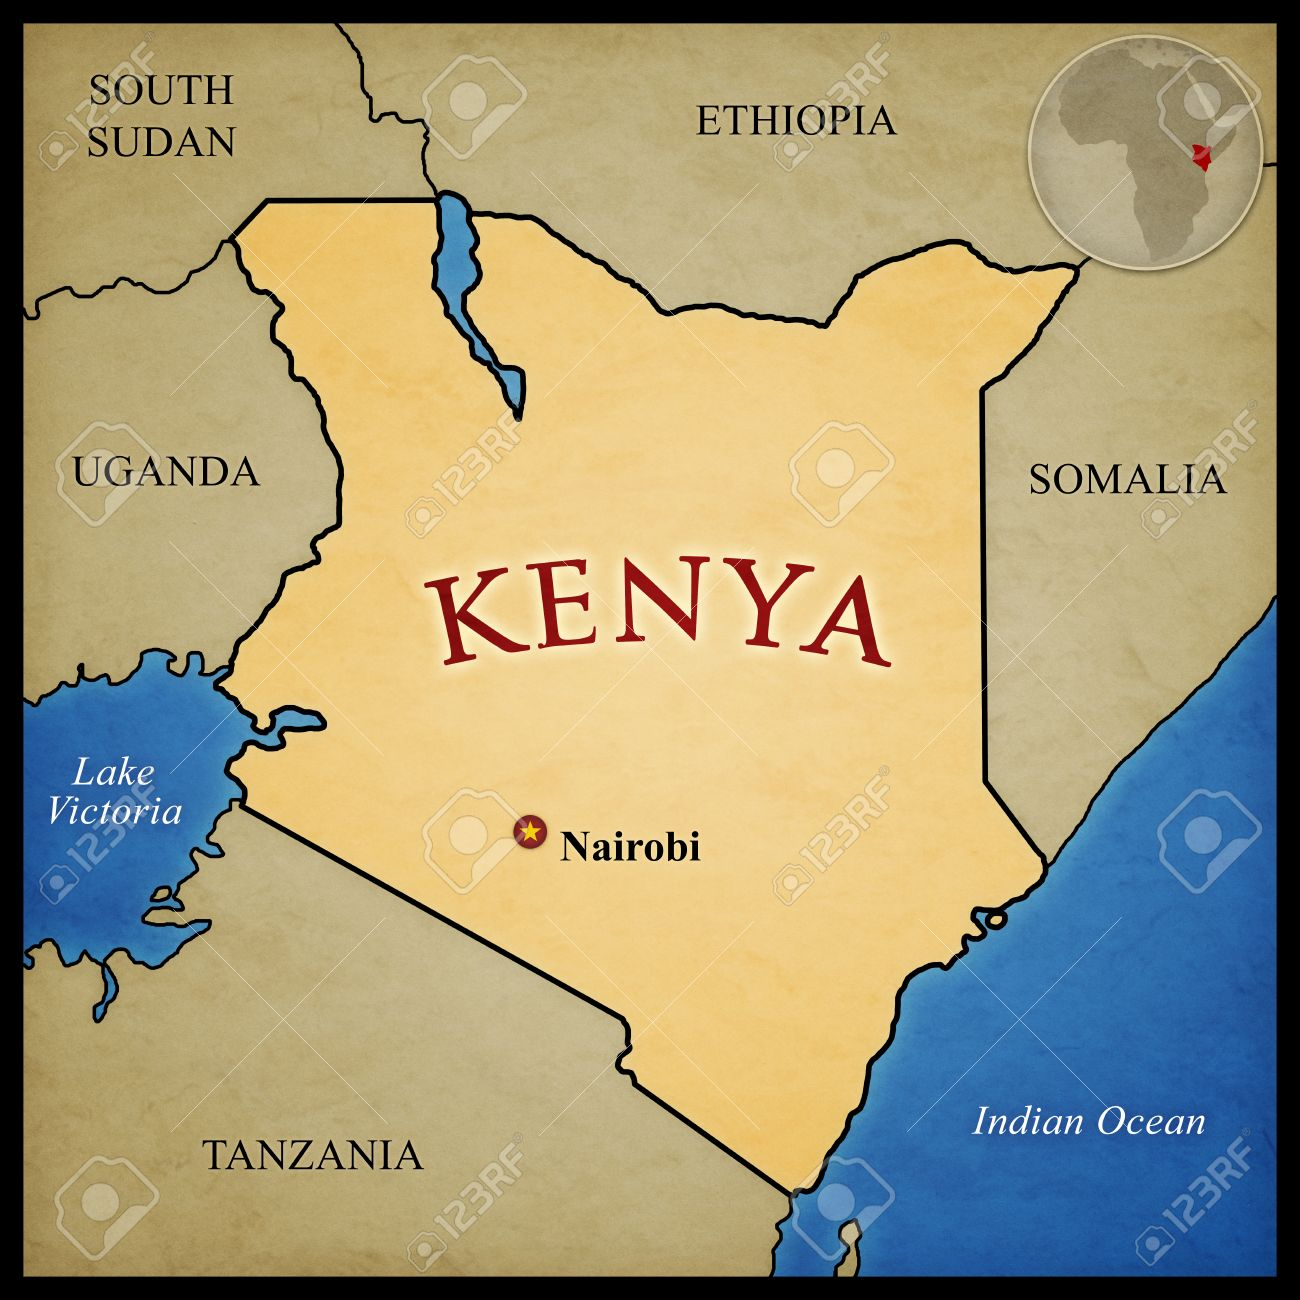 Kenya map and bordering countries with capital Nairobi marked...